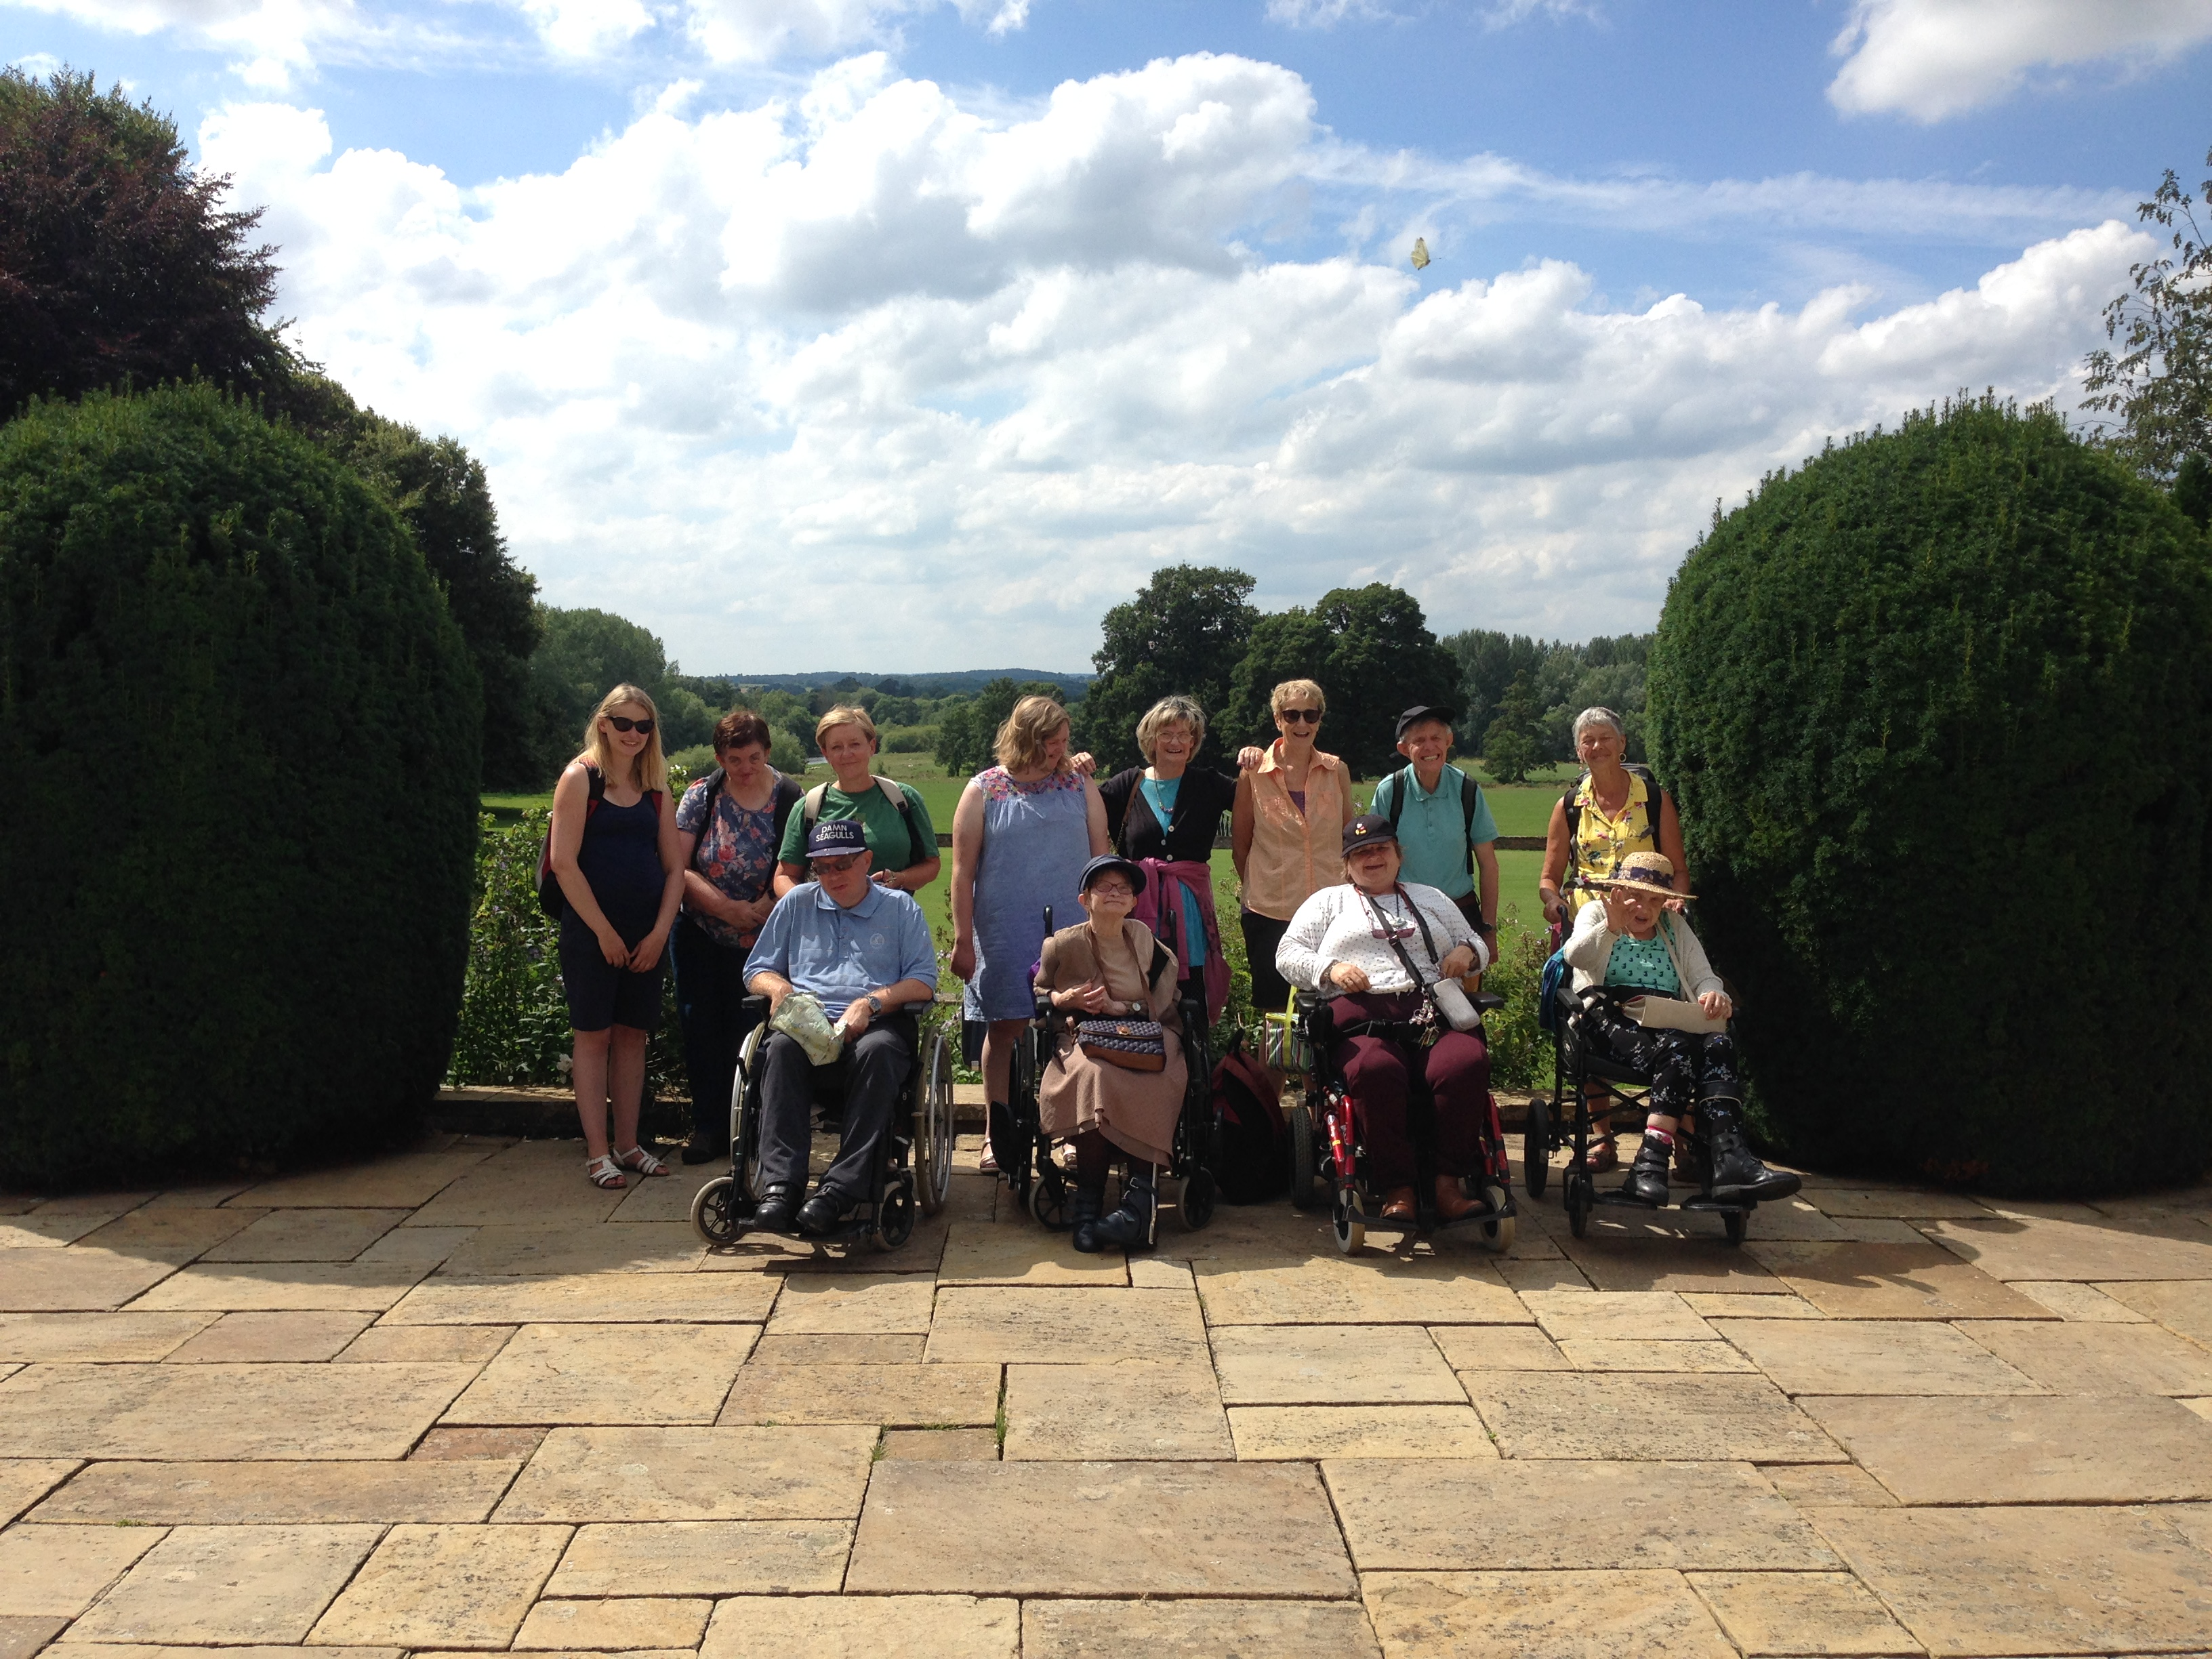 The Outings Group at Newby Hall Gardens in the summer.